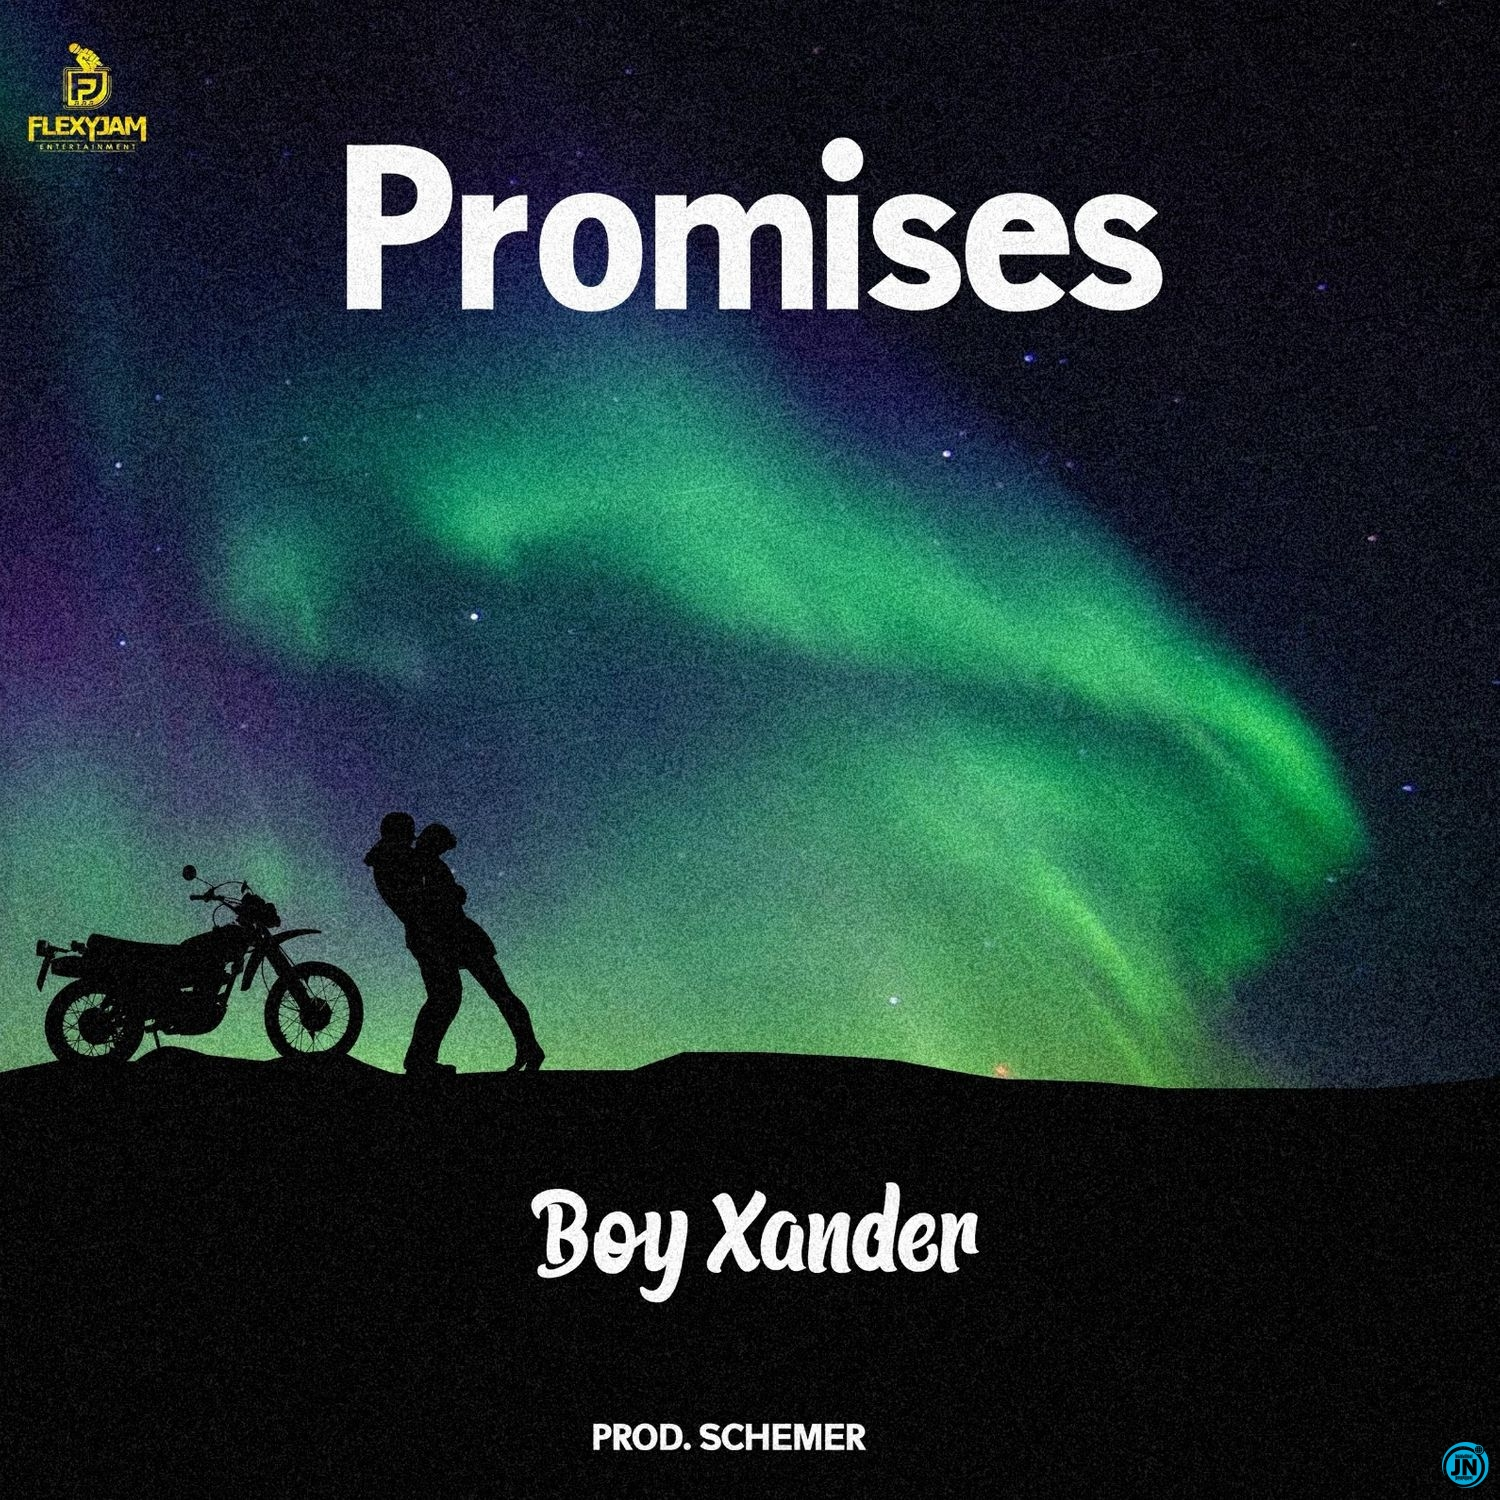 Boy Xander - Promises